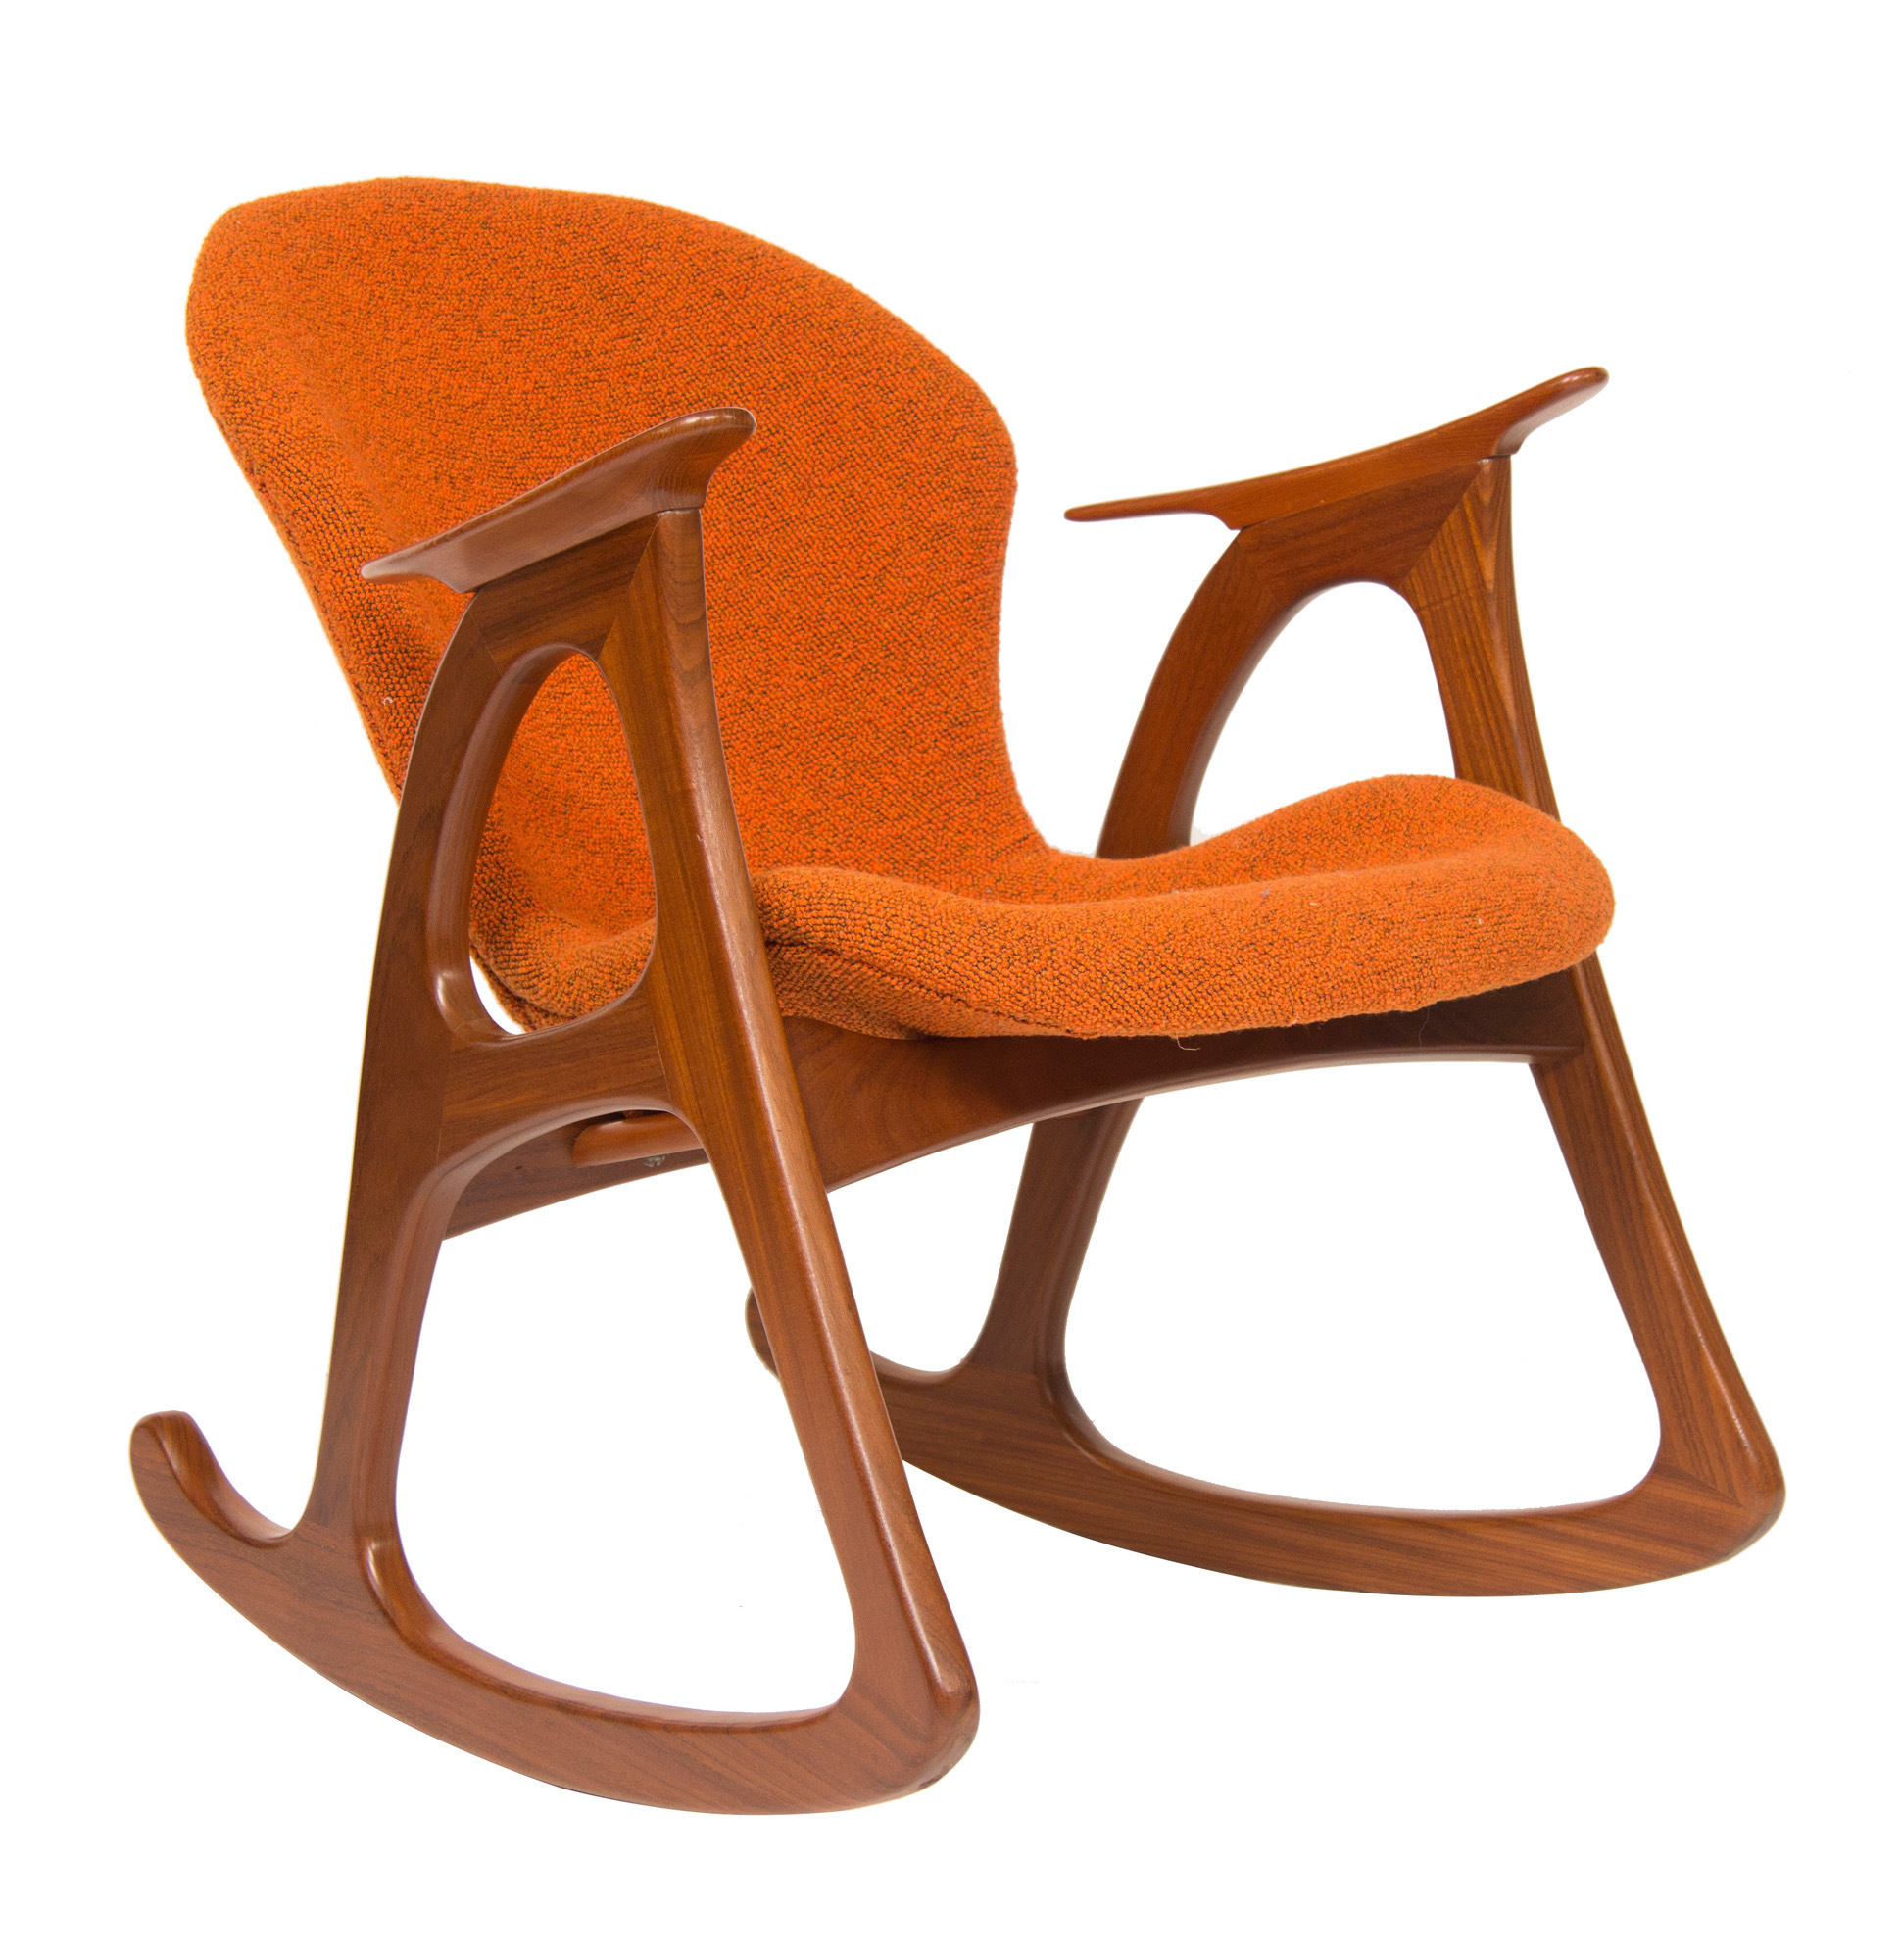 Super Midcentury Rocking Chair By Aage Christiansen For Erhardsen Andersen Creativecarmelina Interior Chair Design Creativecarmelinacom